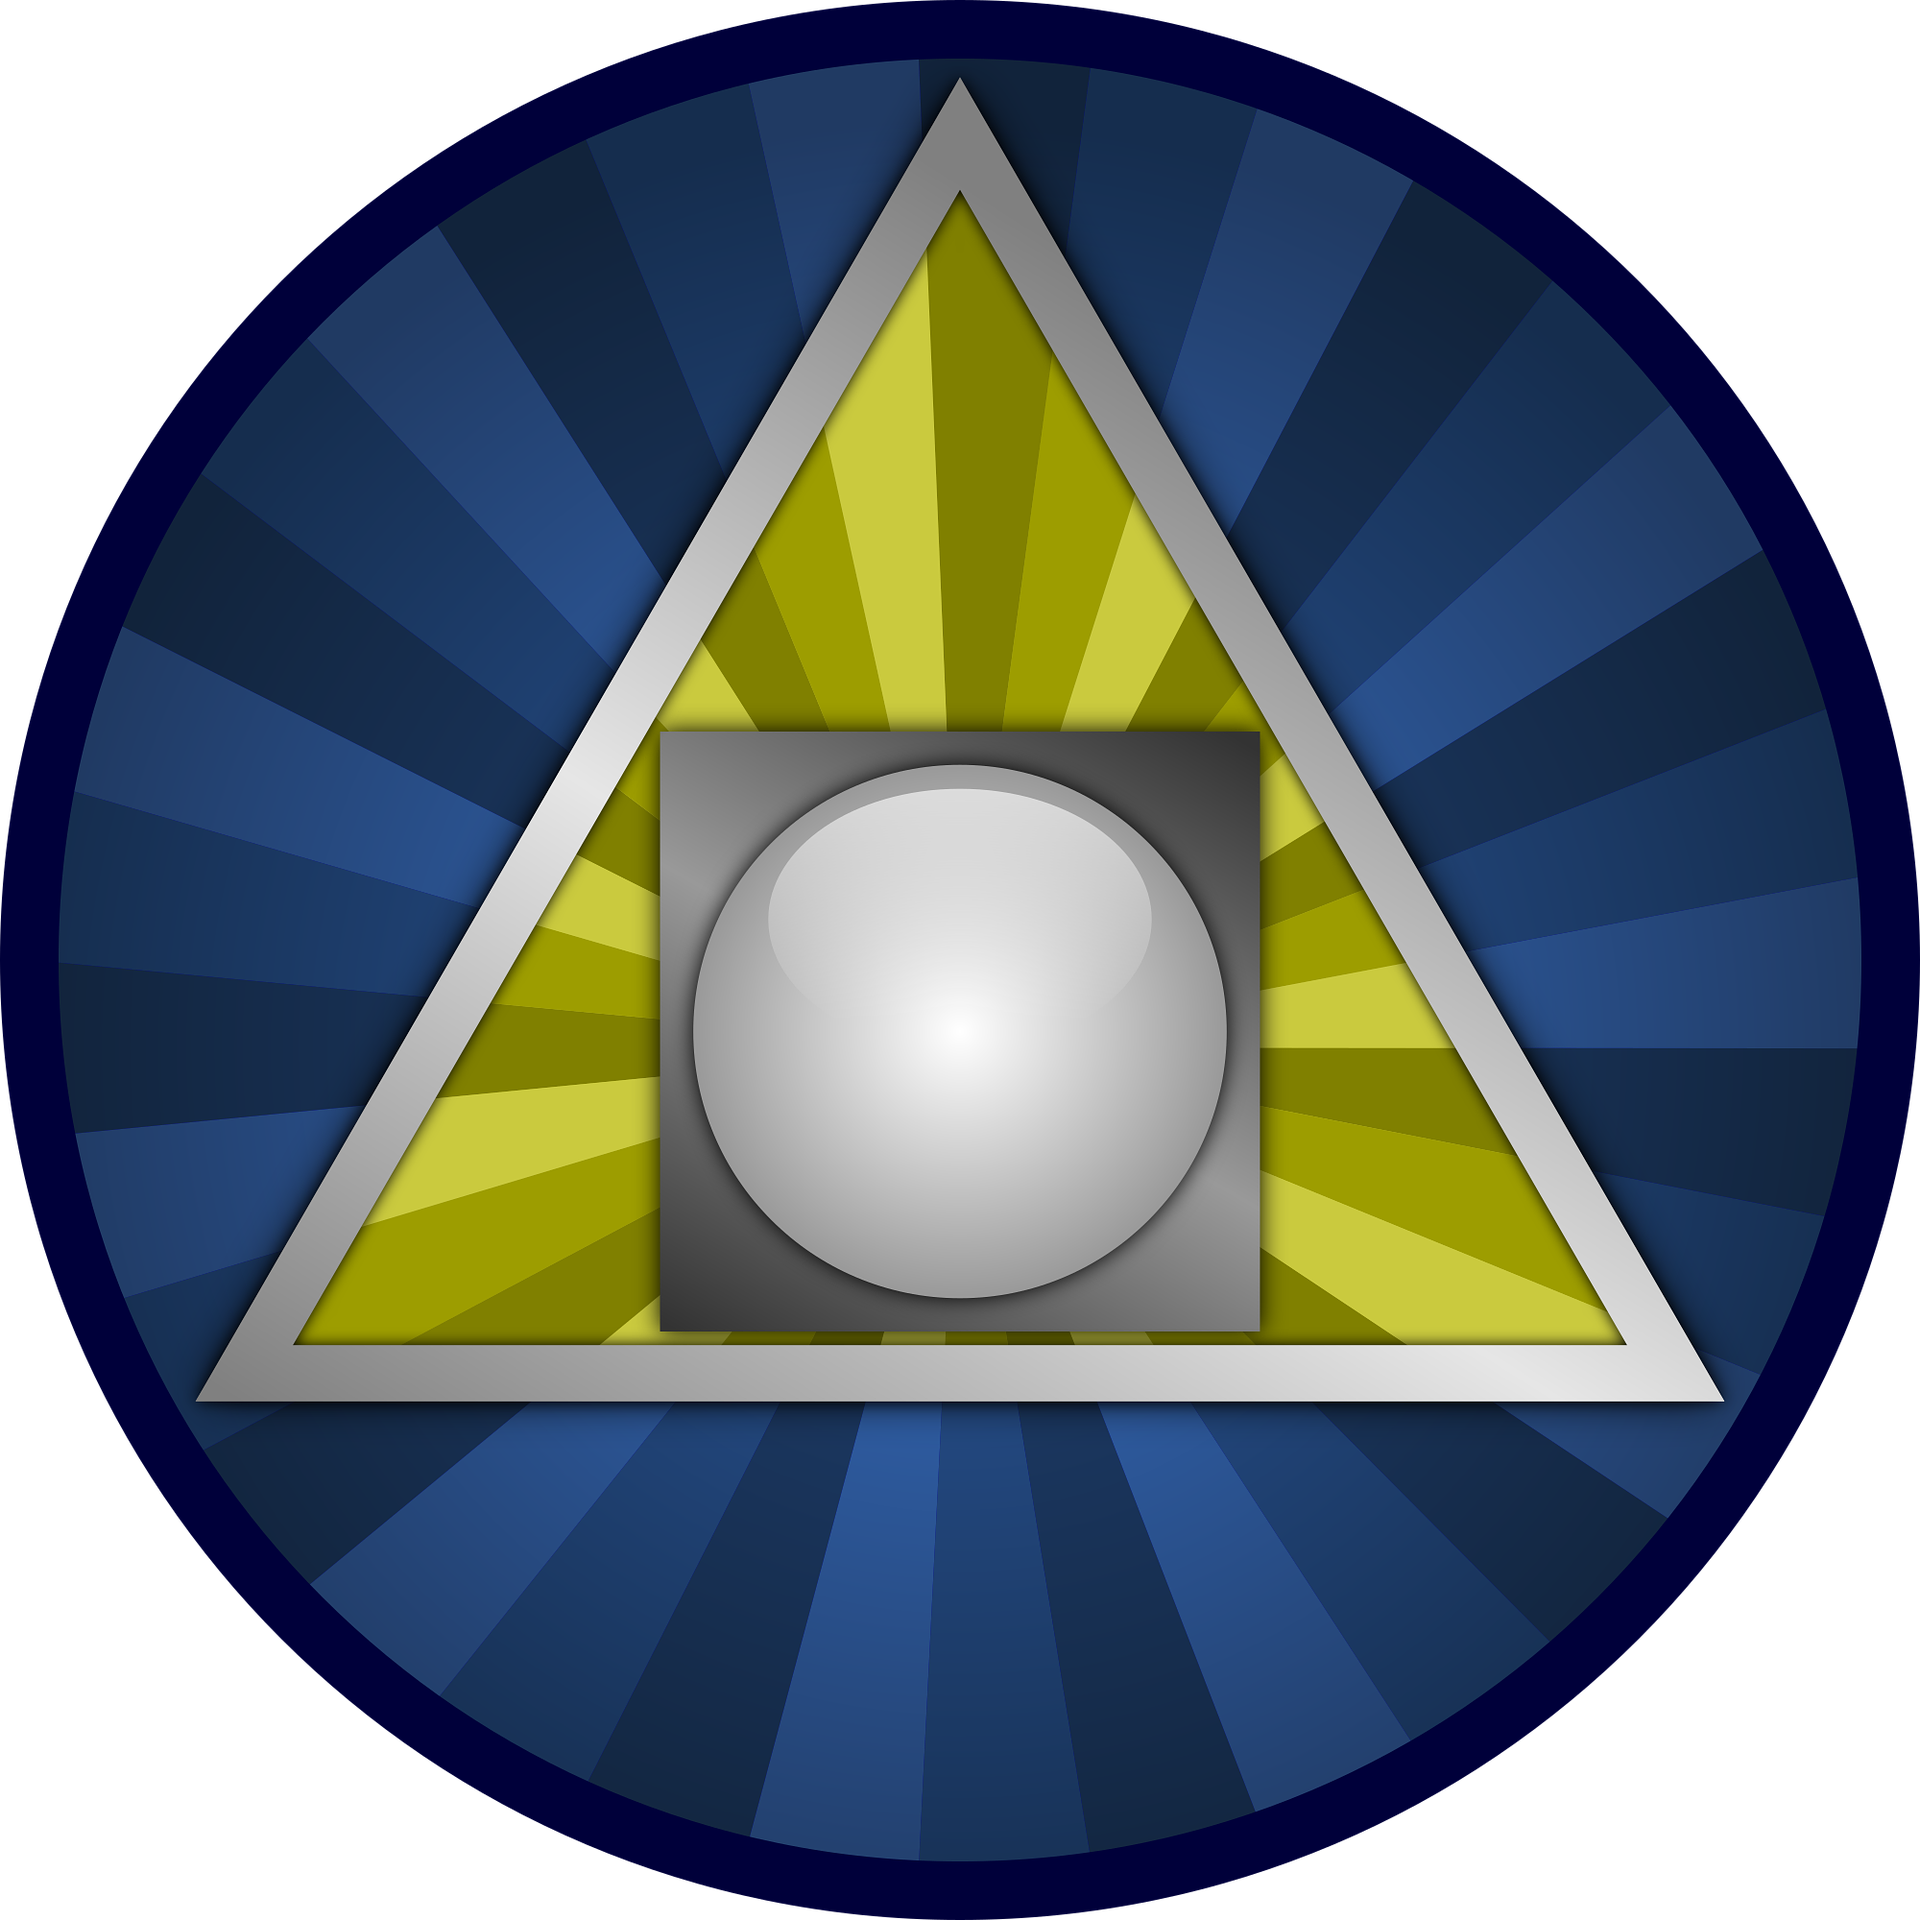 alchemy-2540896_1920.png